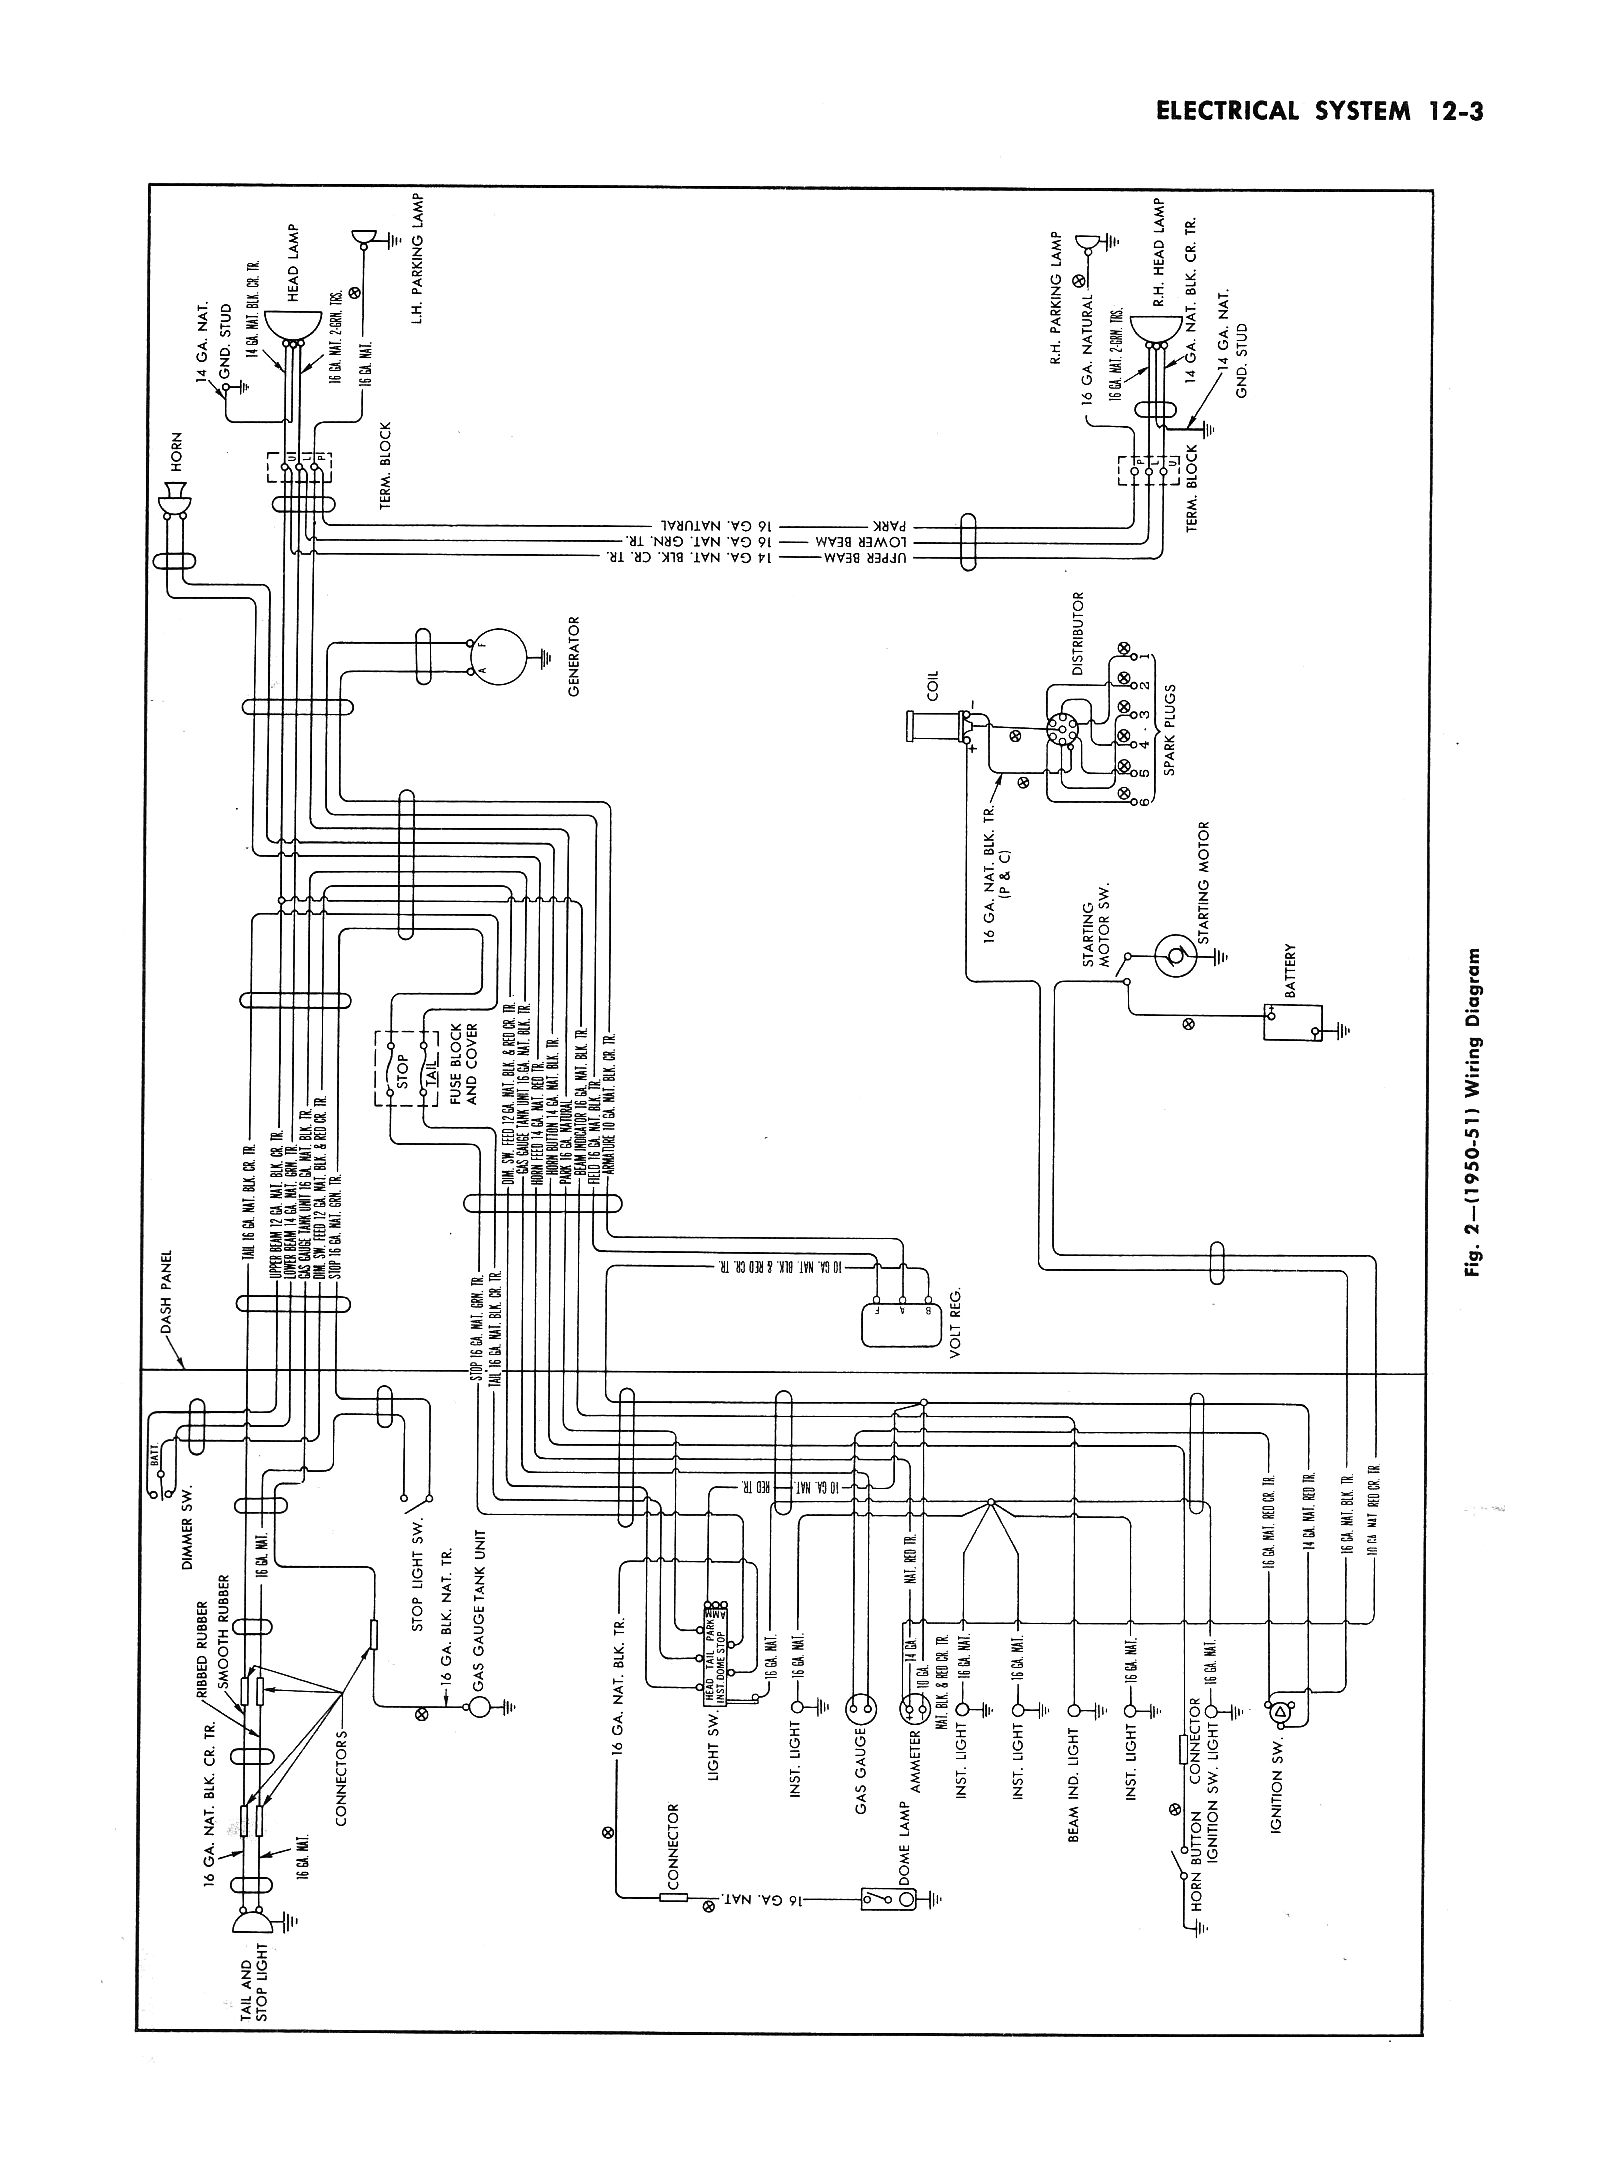 Chevy Wiring Diagrams Chevy Headlight Switch Wiring Diagram 1949 Chevy Truck  Headlight Switch Wiring